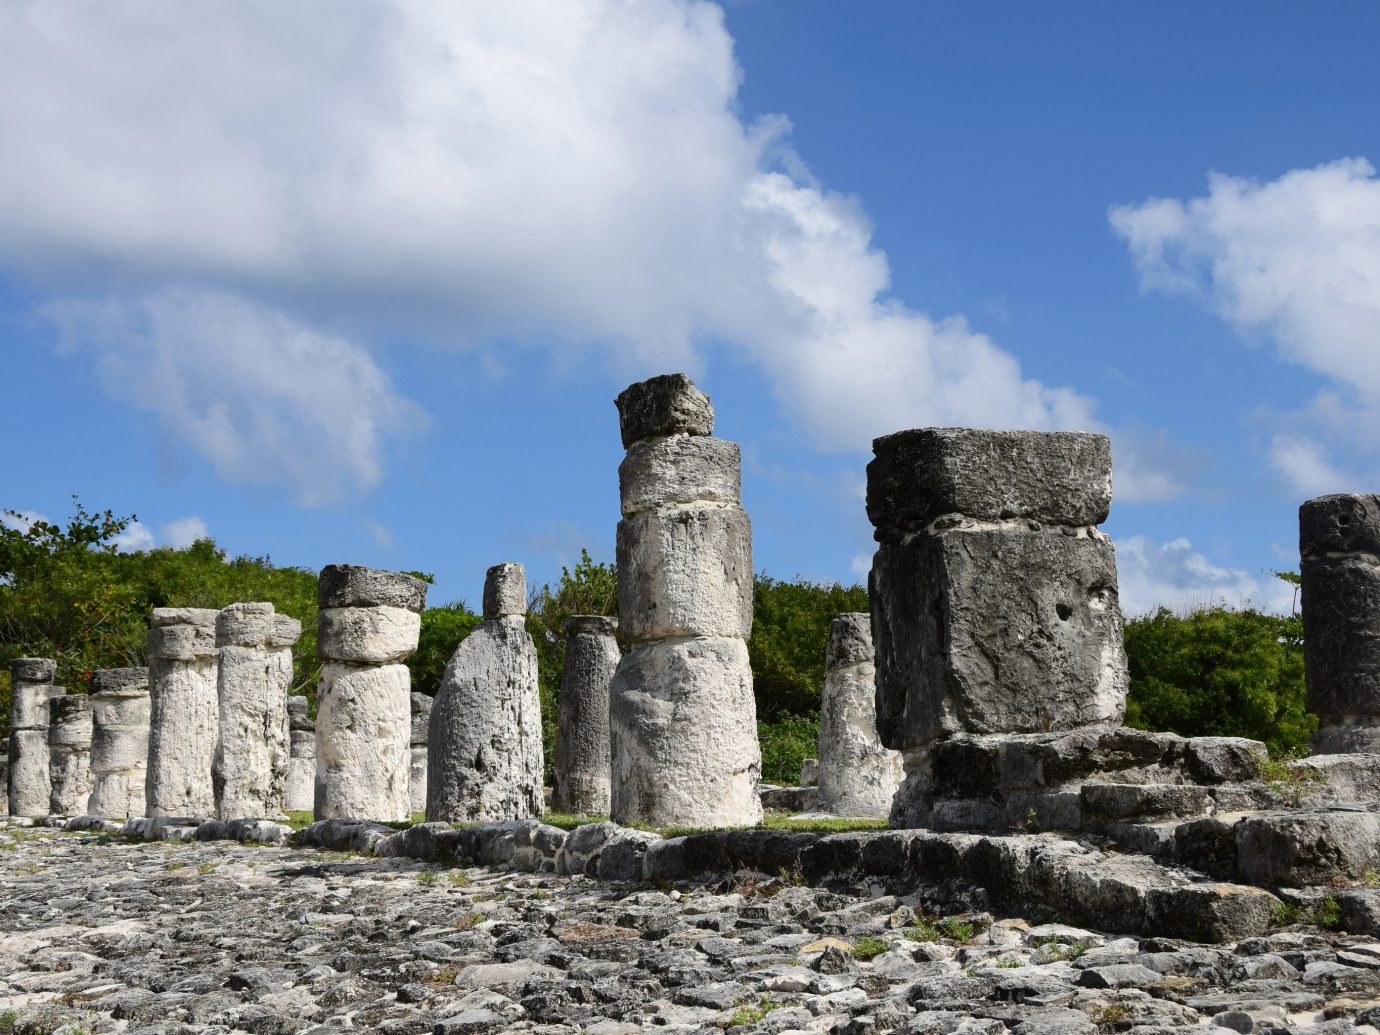 Travel Tips building rock outdoor historic site Ruins ancient history archaeological site sky stone maya civilization cloud history maya city tourist attraction grass column unesco world heritage site tours castle